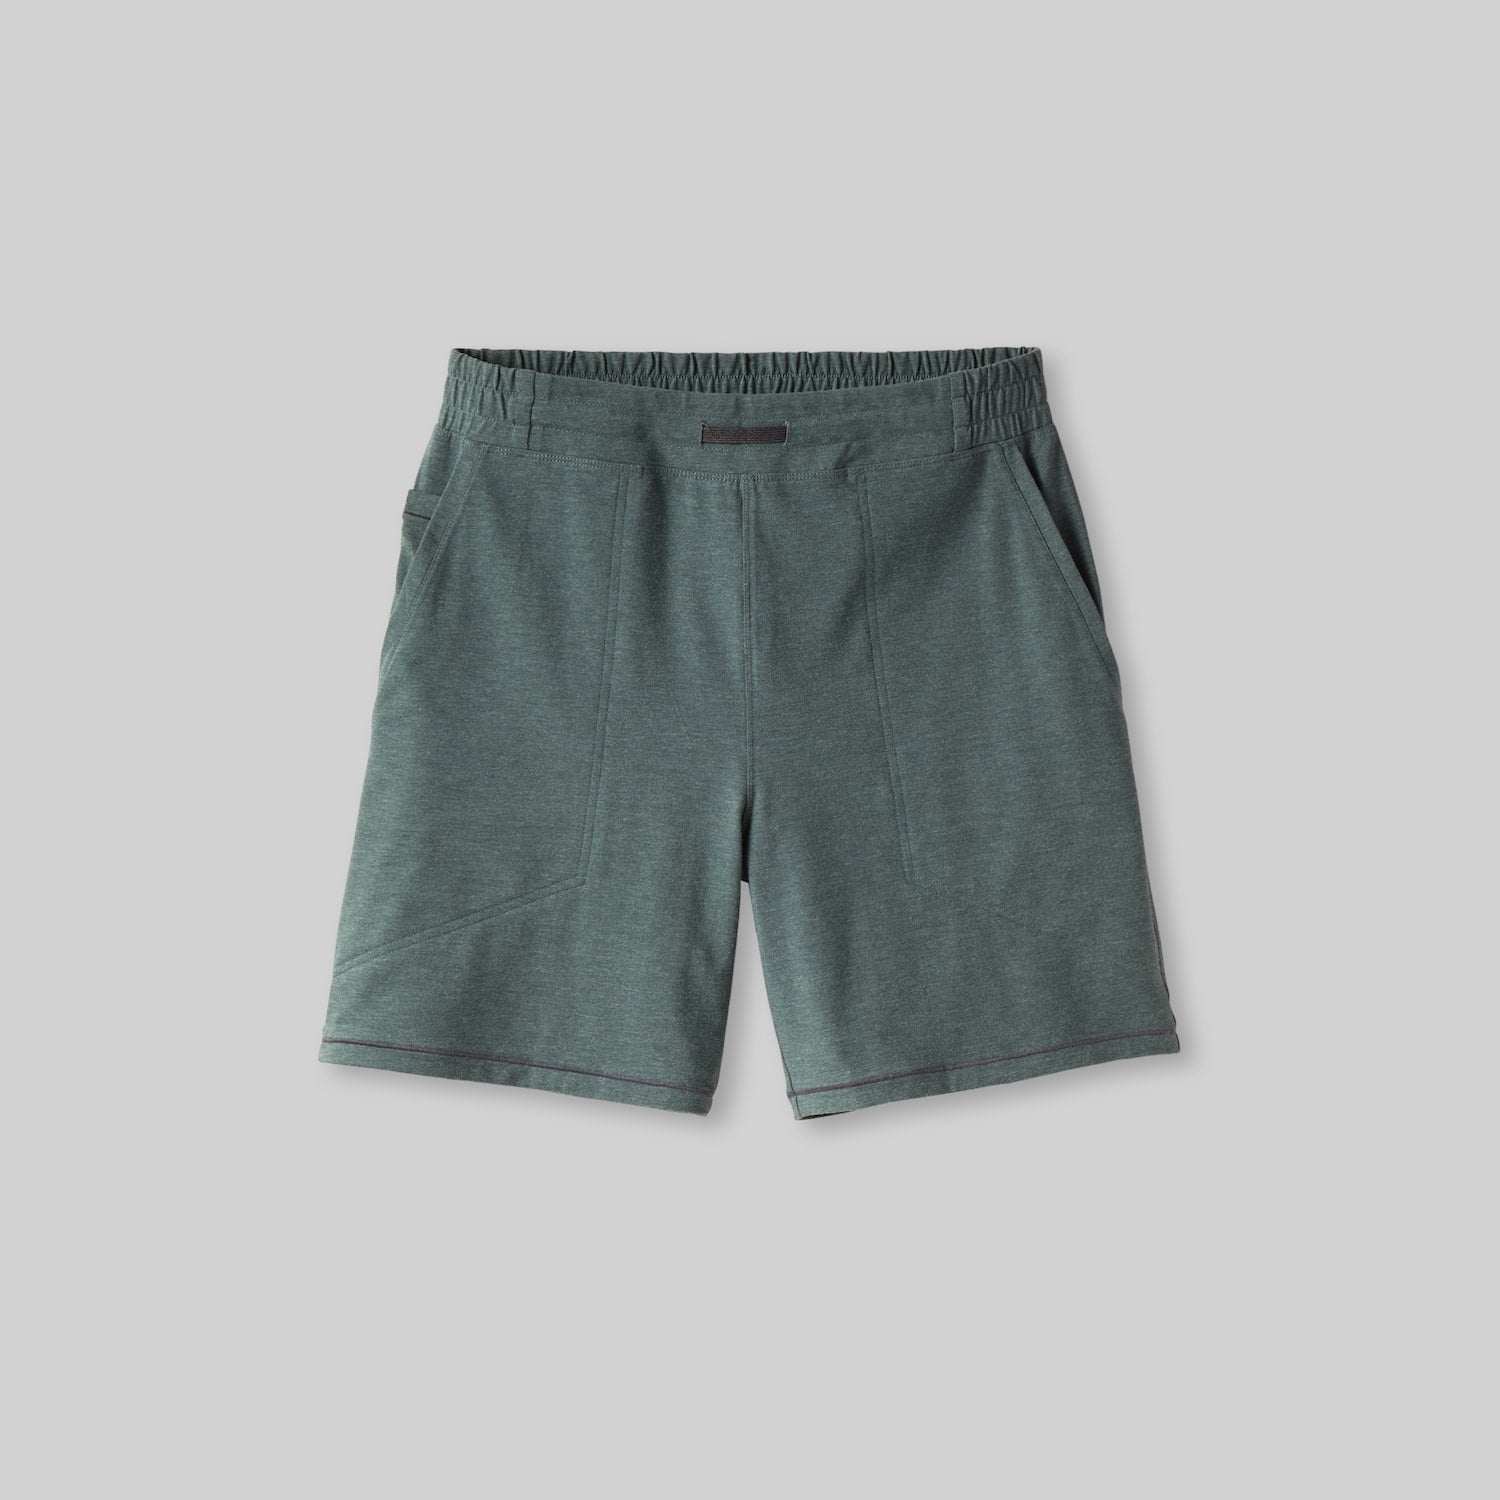 Lahgo Sleepwear Restore Short - #Forest